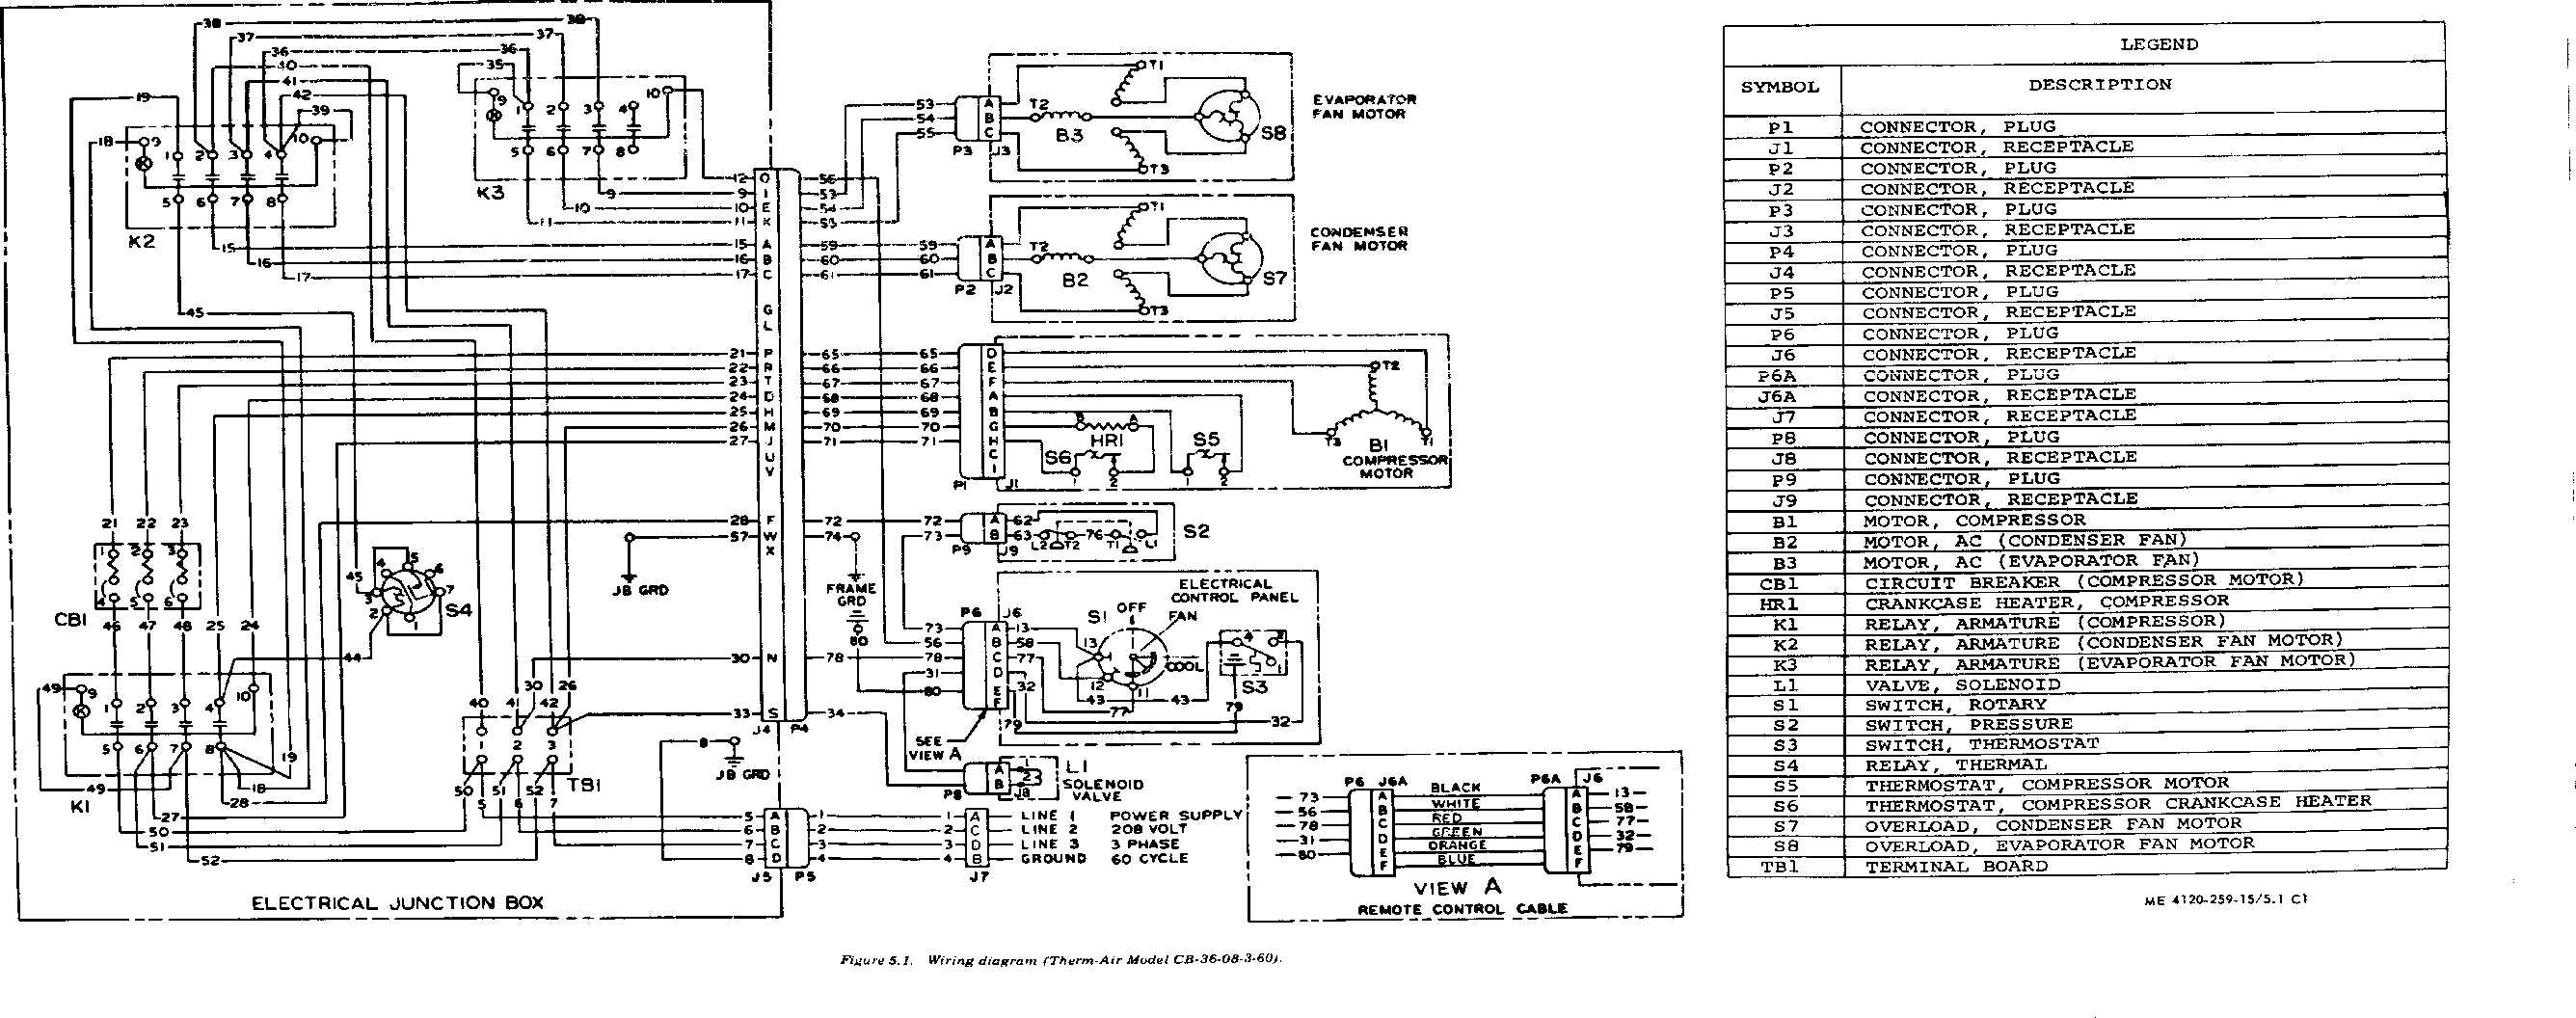 Payne Package Unit Wiring Diagram Sample For Ac Thermostat Download Tech New Heat Pump Thermostatng